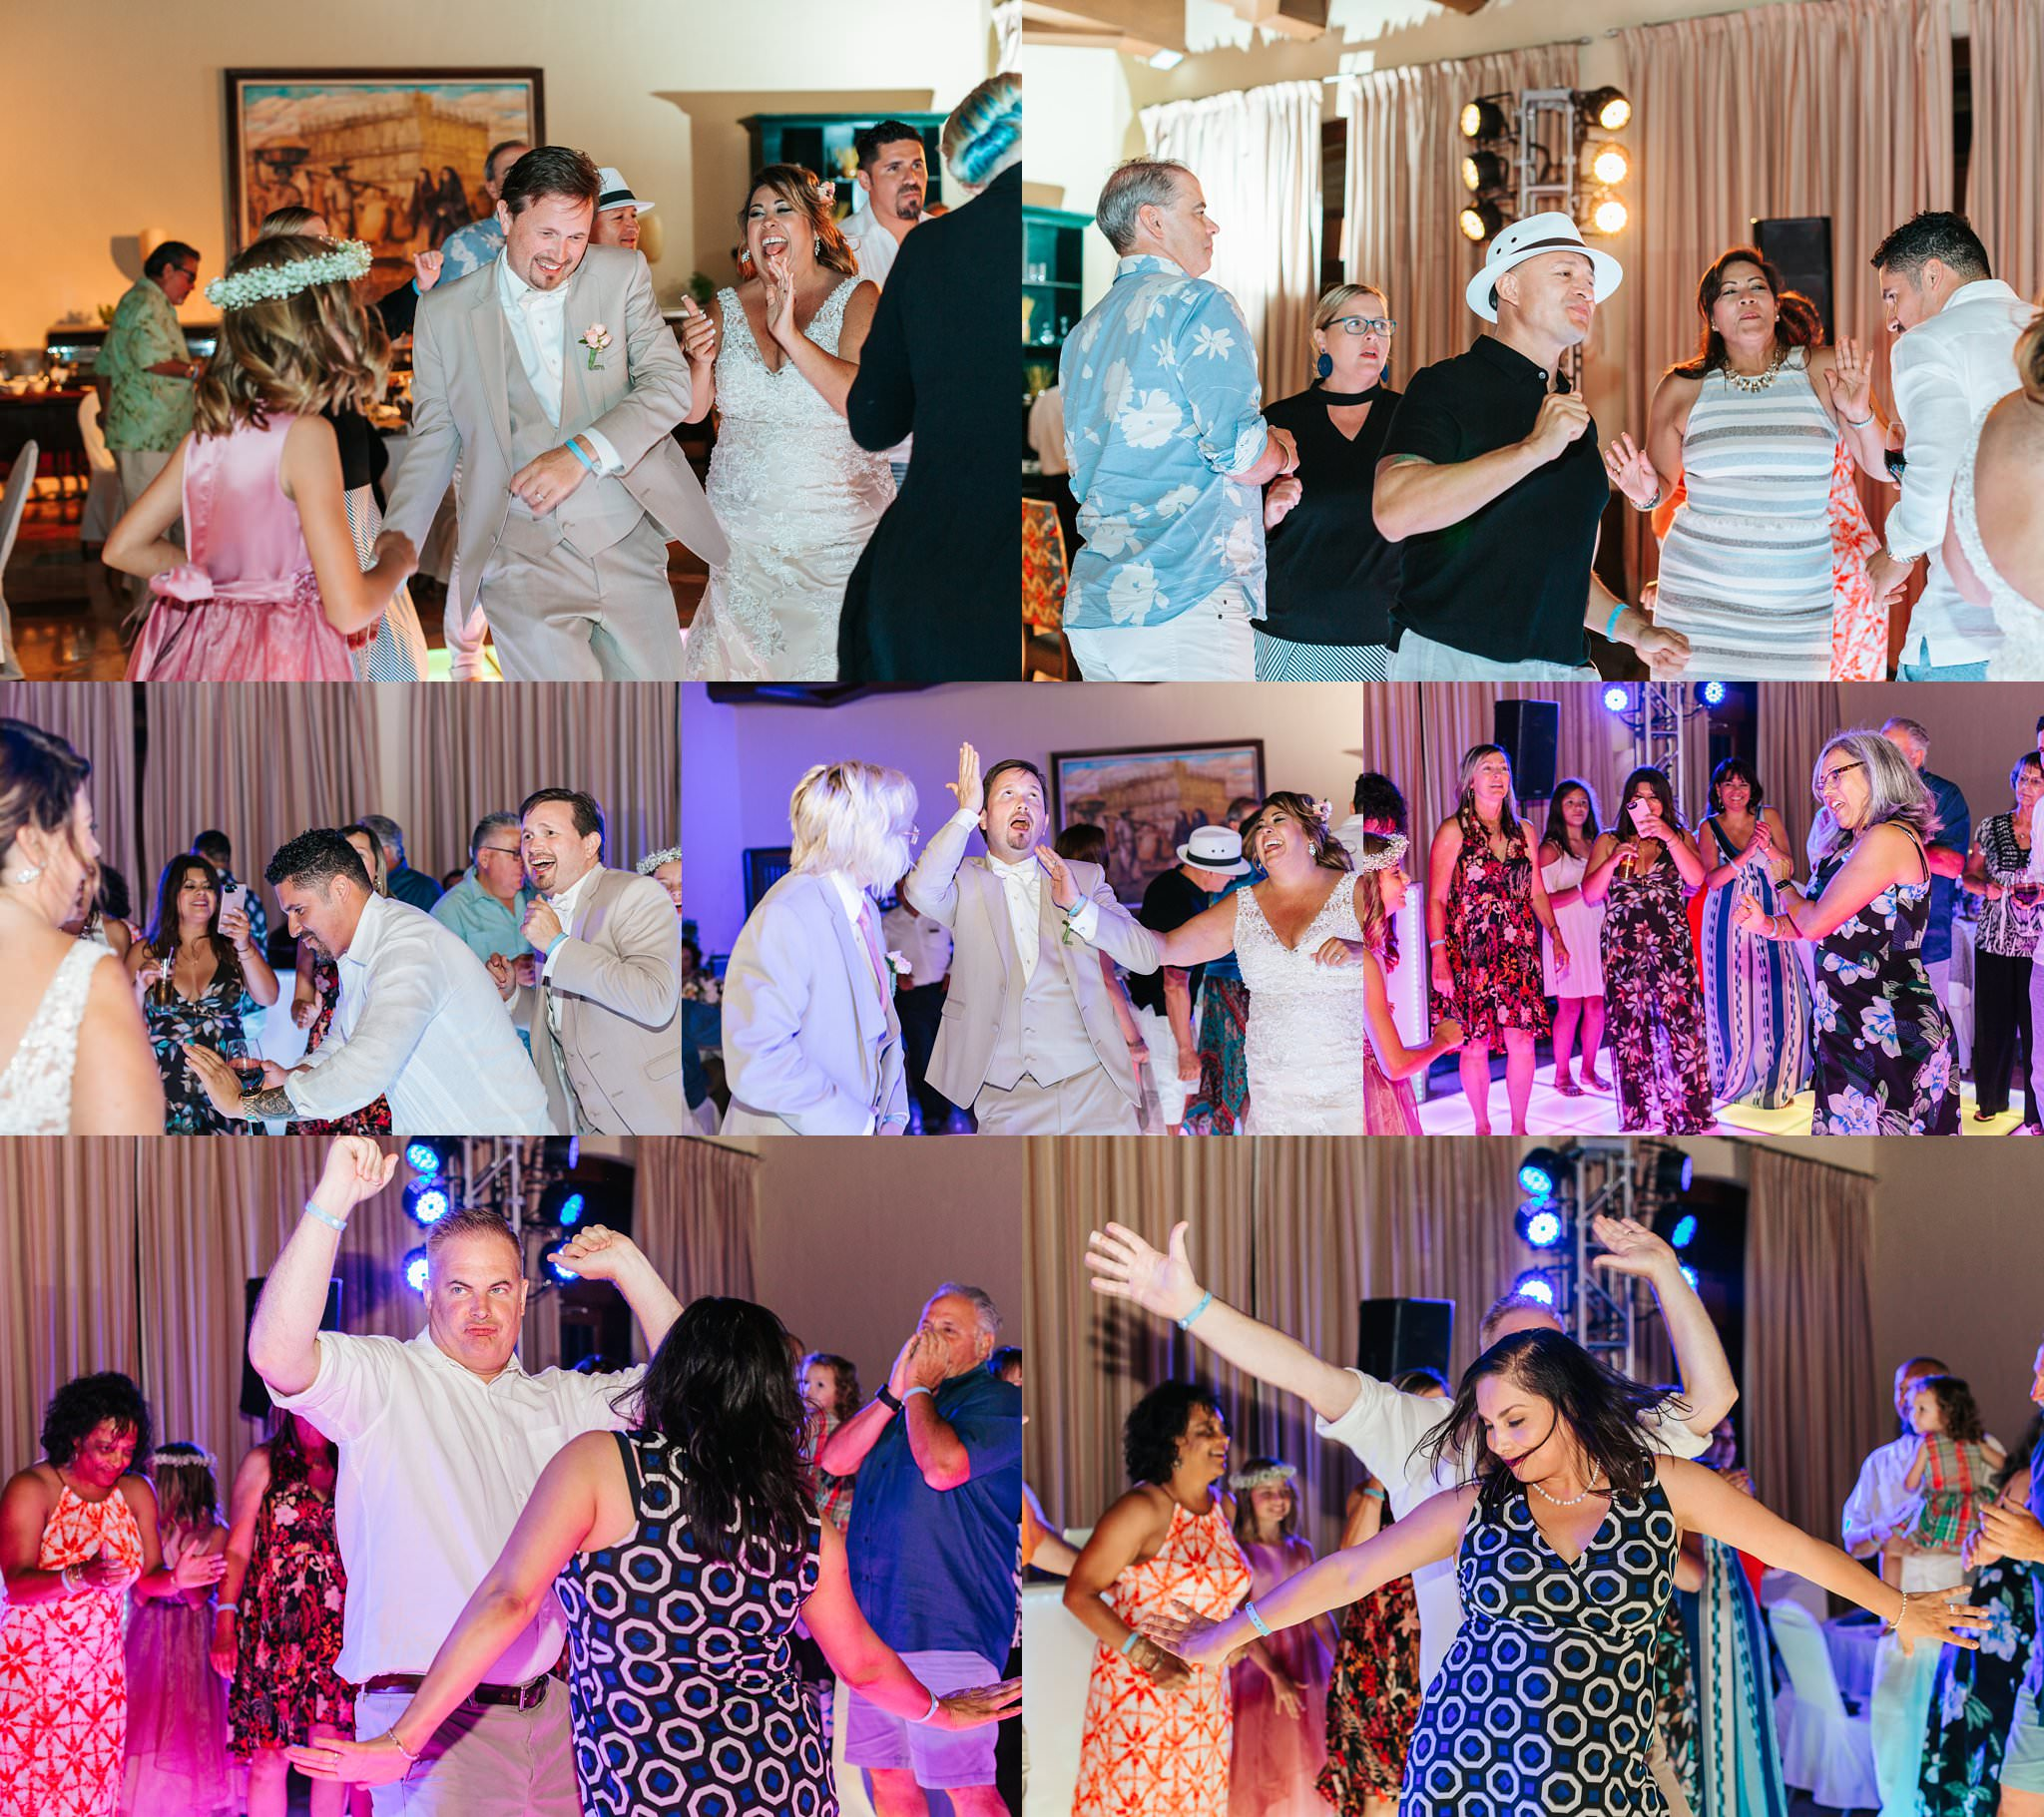 Dancing during the reception - Cabo Resort Destination Wedding - https://brittneyhannonphotography.com